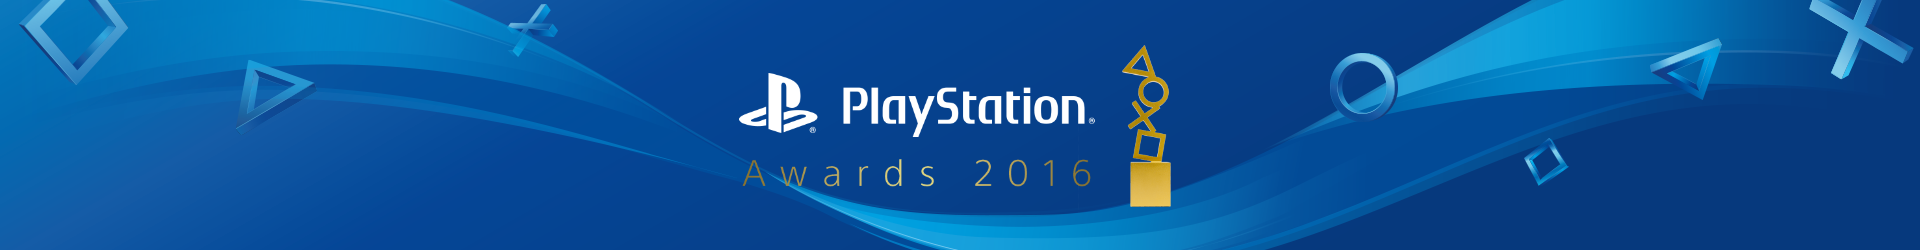 PlayStation Award 2016